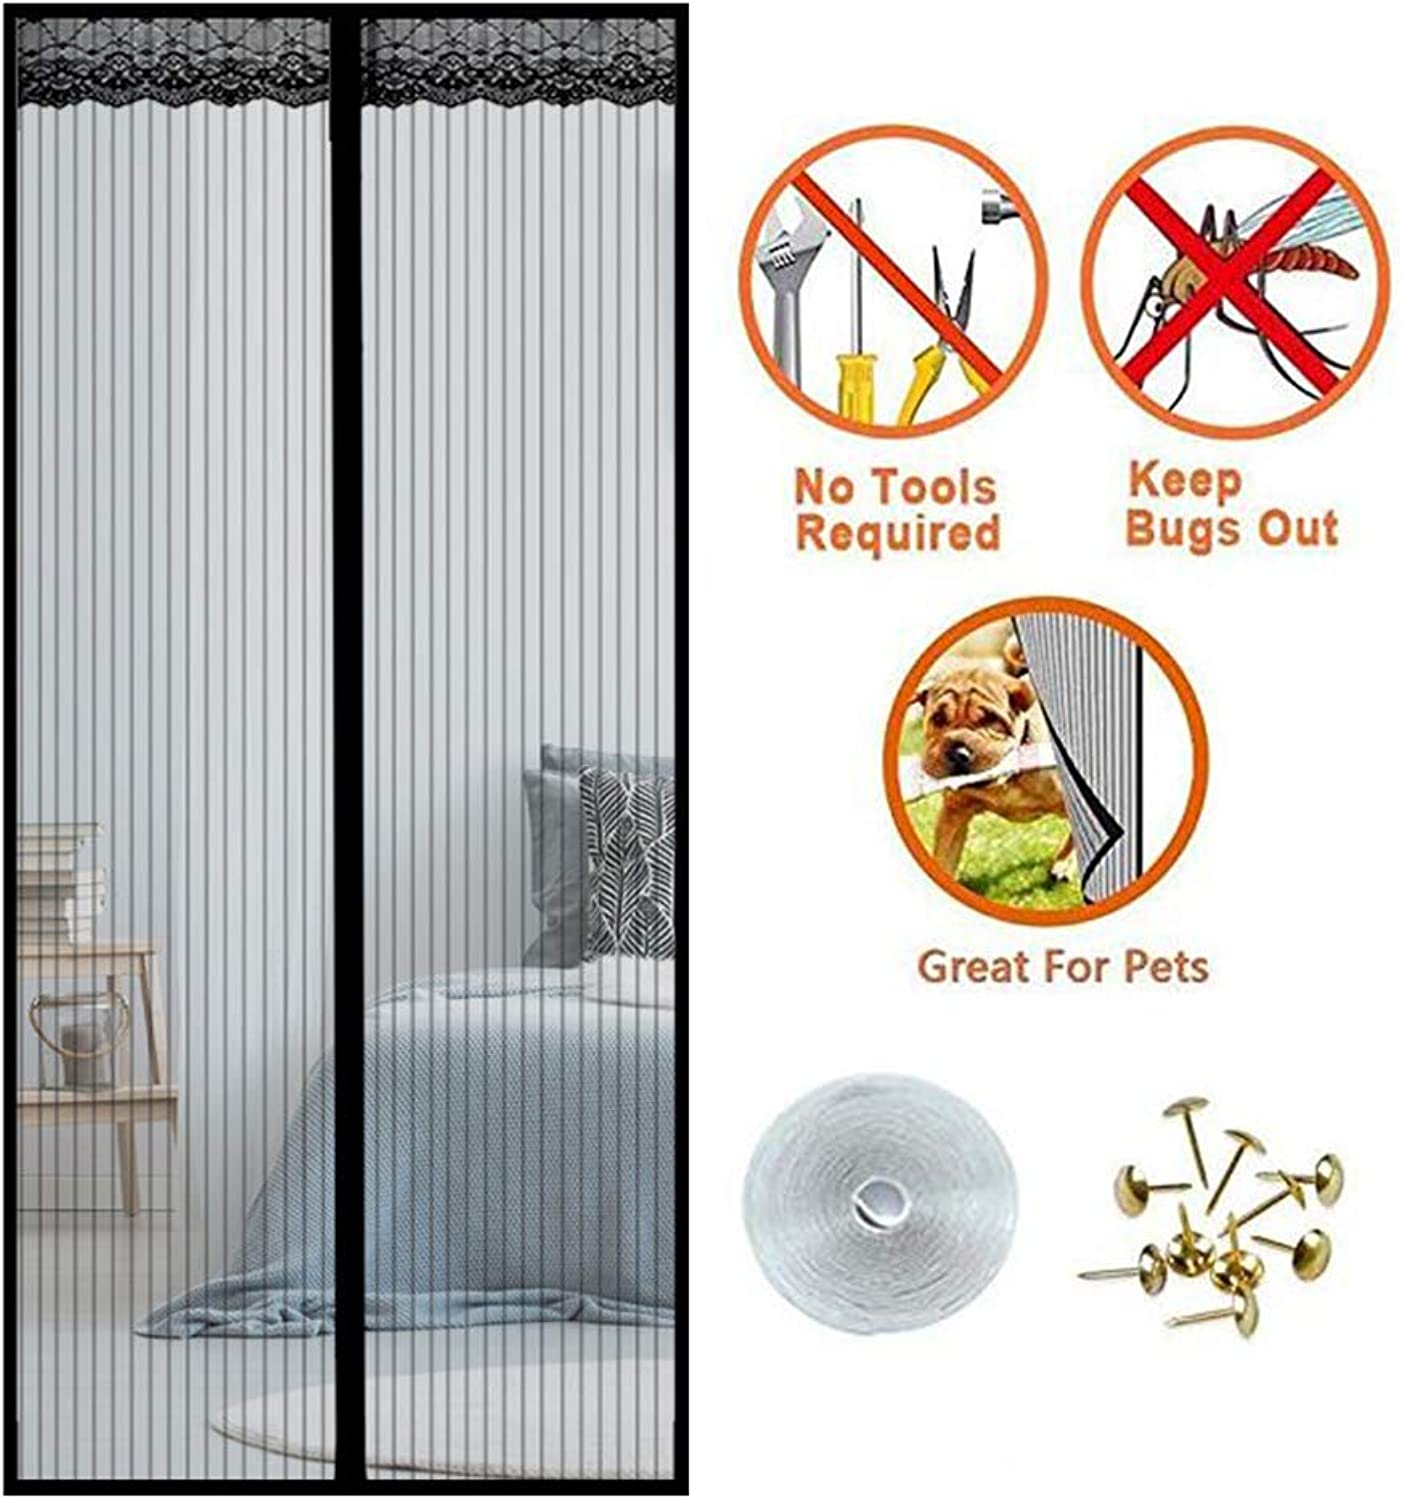 Heavy Duty Magnetic Fly Screen Door, 100x210cm Magnet Patio Mesh Curtain Full Frame Velcro Keep Fly Bug Mosquito Out,Black,180x240cm